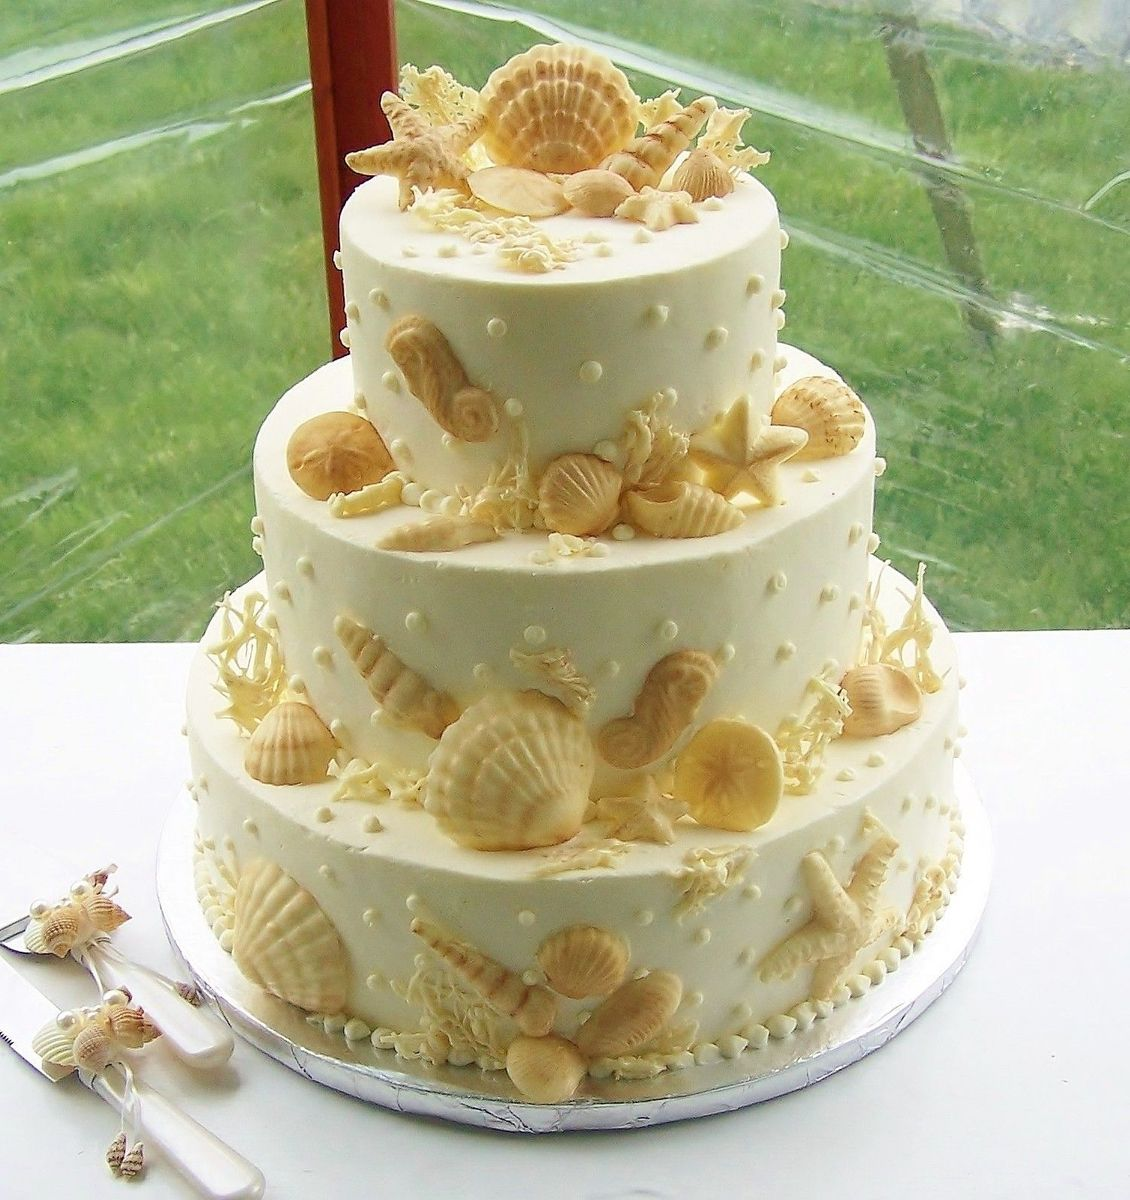 Cape Cod Wedding Cakes - Reviews for 11 Cakes